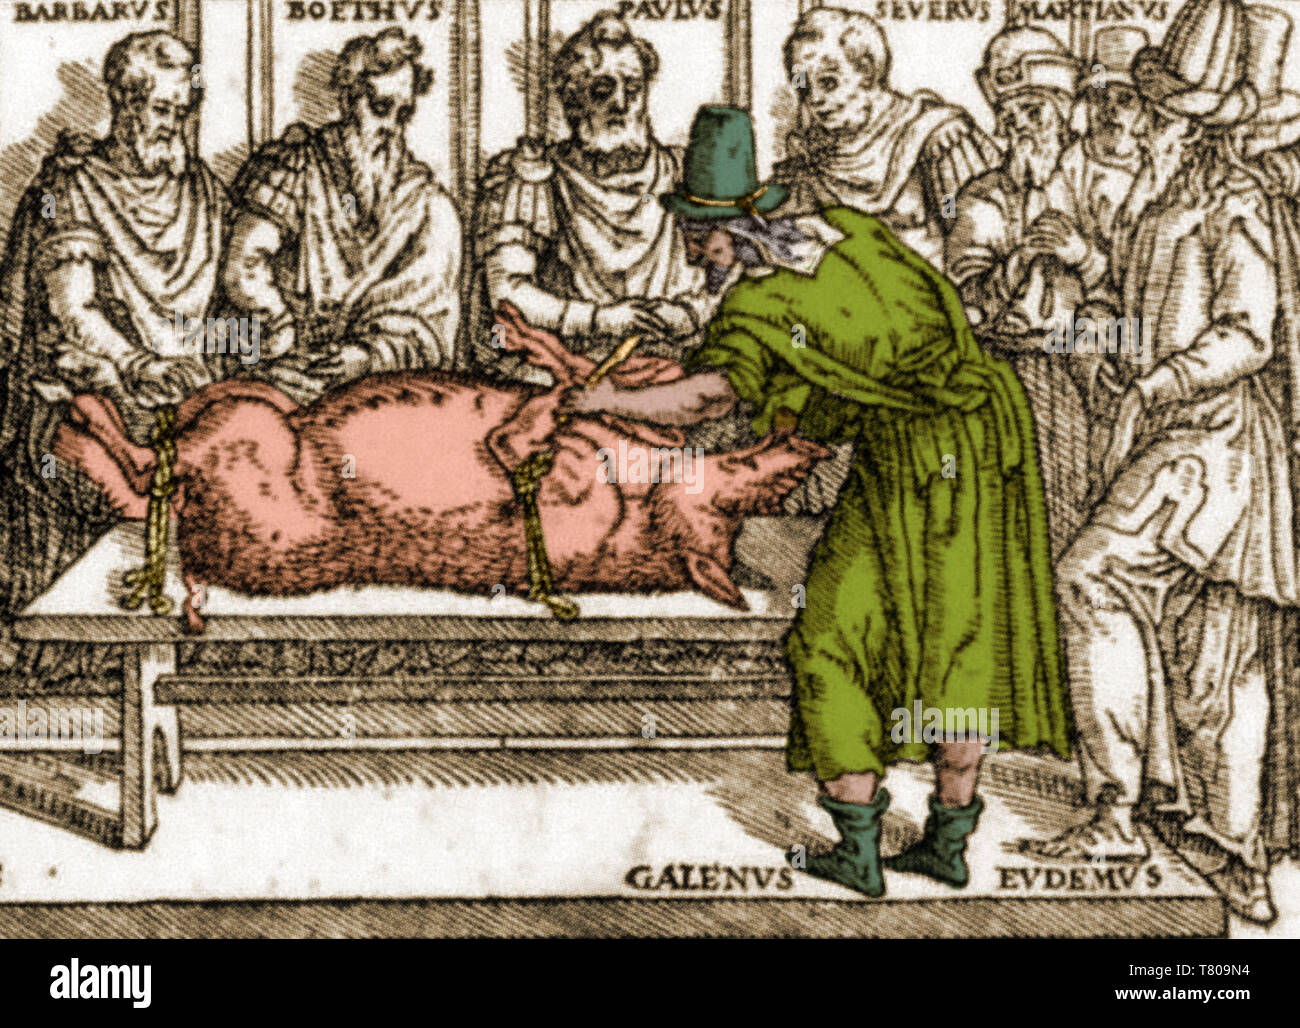 Galen Dissecting Pig - Stock Image